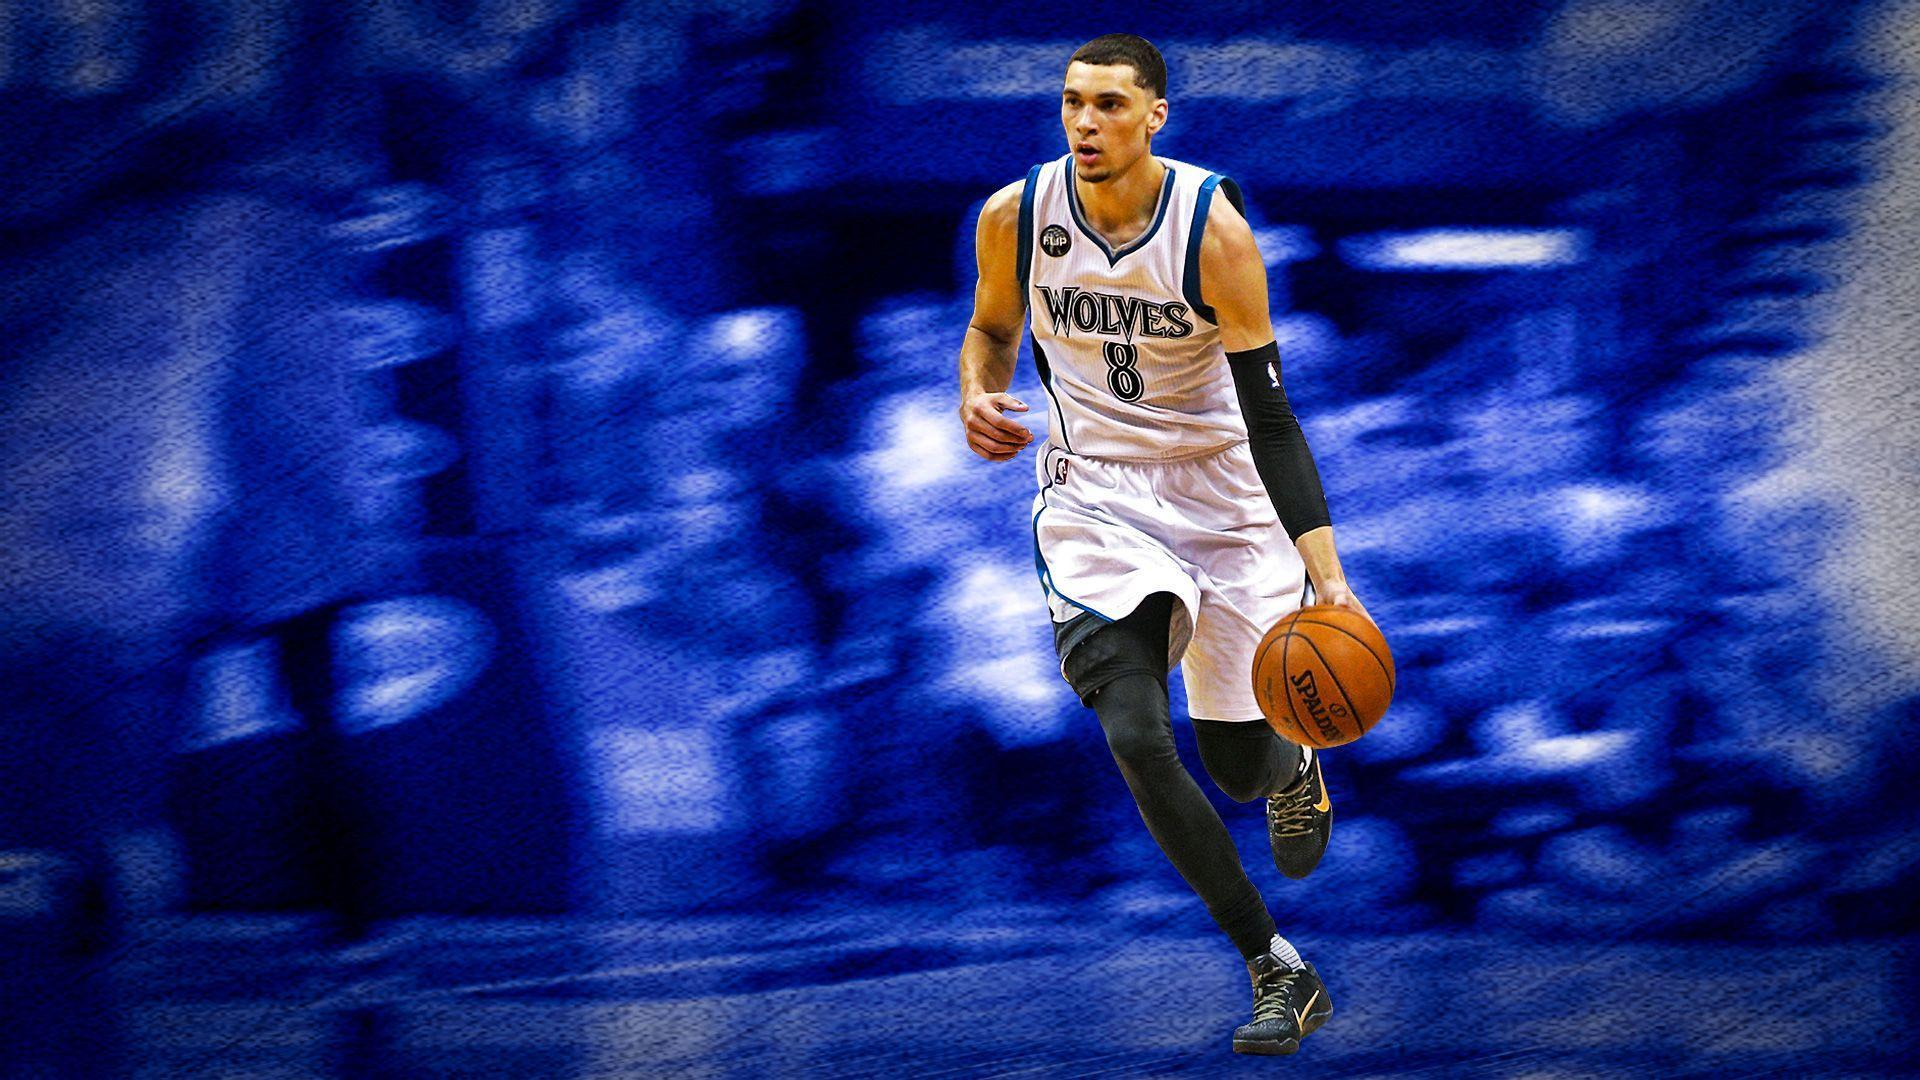 Zach LaVine may be the real key to unlocking Timberwolves